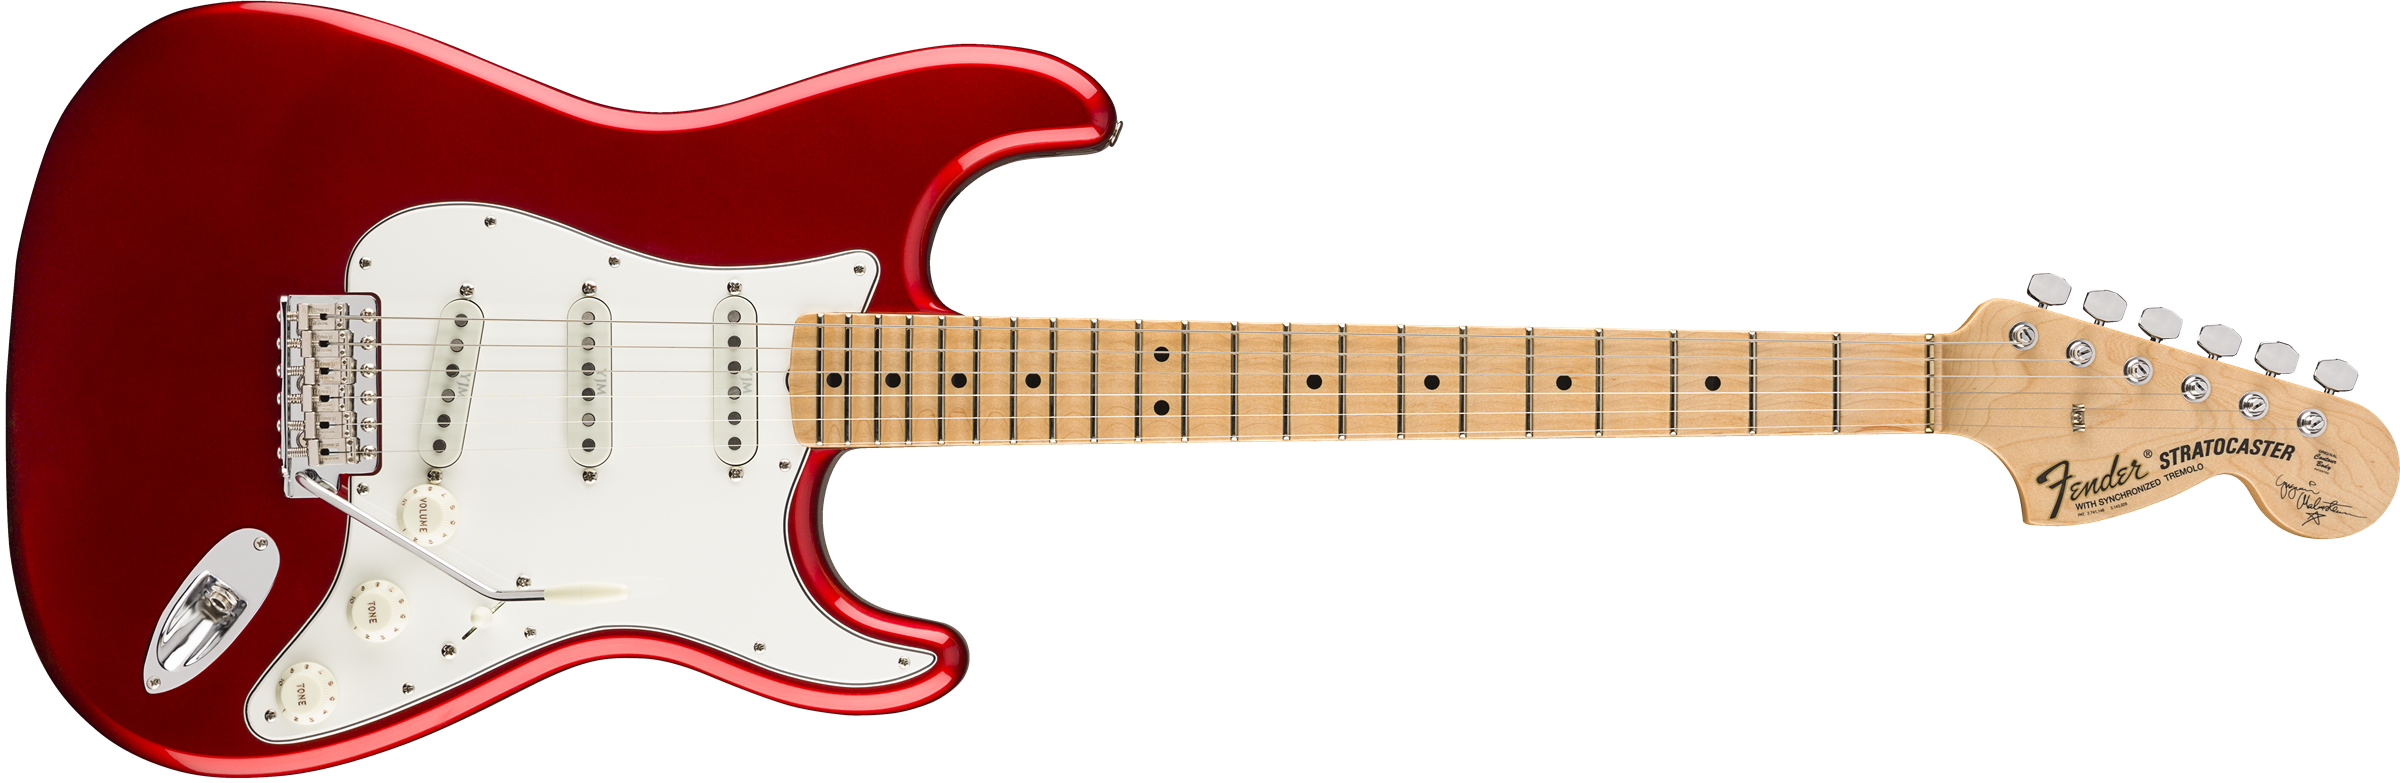 FENDER-Yngwie-Malmsteen-Signature-Stratocaster-Scalloped-Maple-Fingerboard-Candy-Apple-Red-sku-571004339